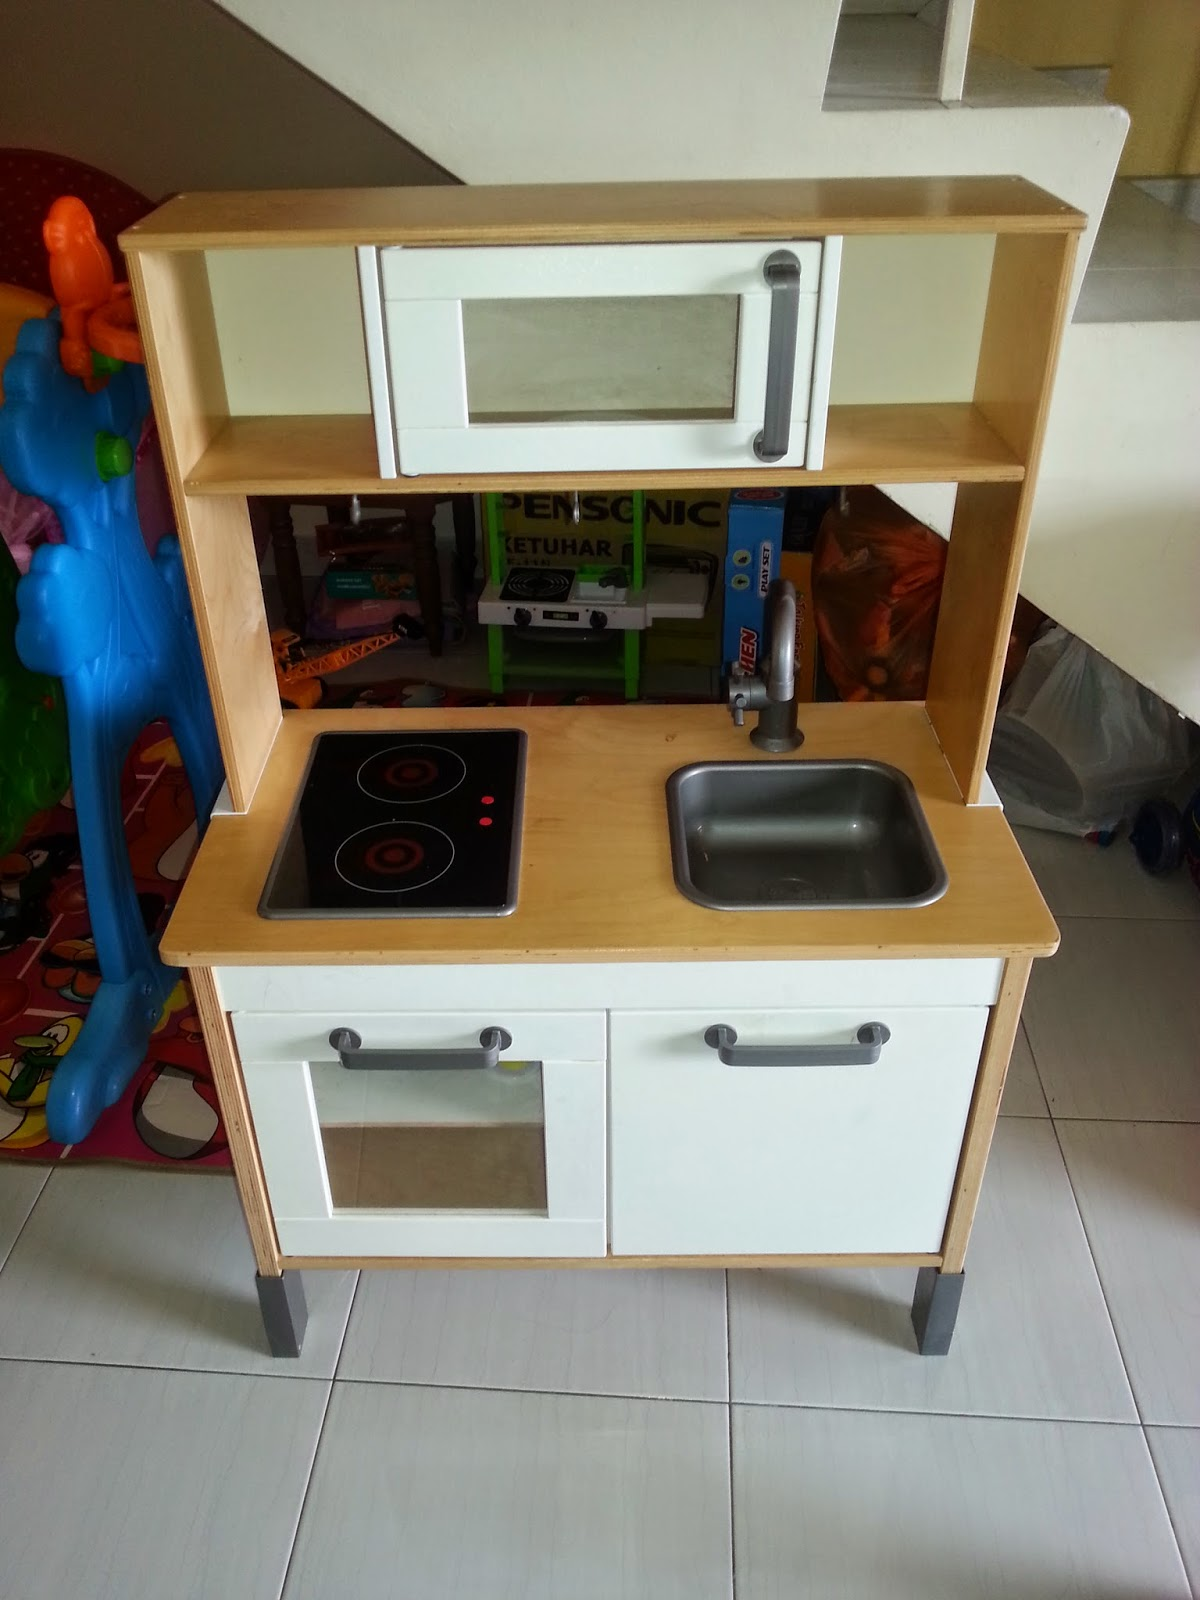 Ikea Duktig Mini Kitchen Sold